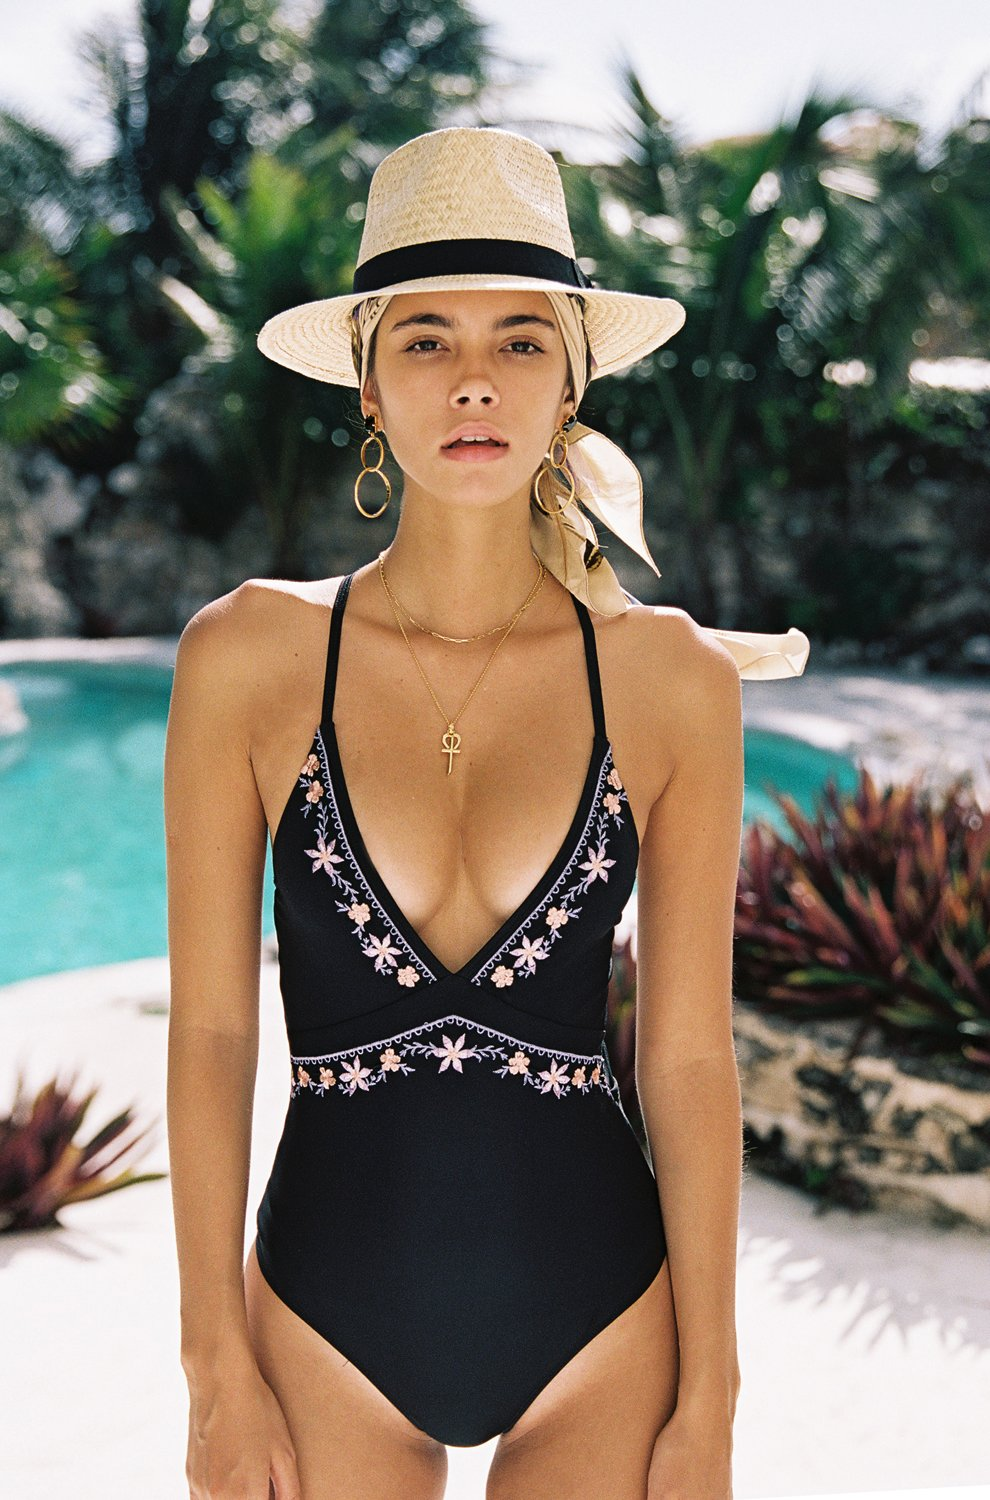 M&M 2019 New Hand Embroidery flower sexy One Piece Swimwear Women Deep V-neck Bathing Suit Beach Backless Swimsuit максисвет бра максисвет design текстиль 3 6557 1 bksyn e14